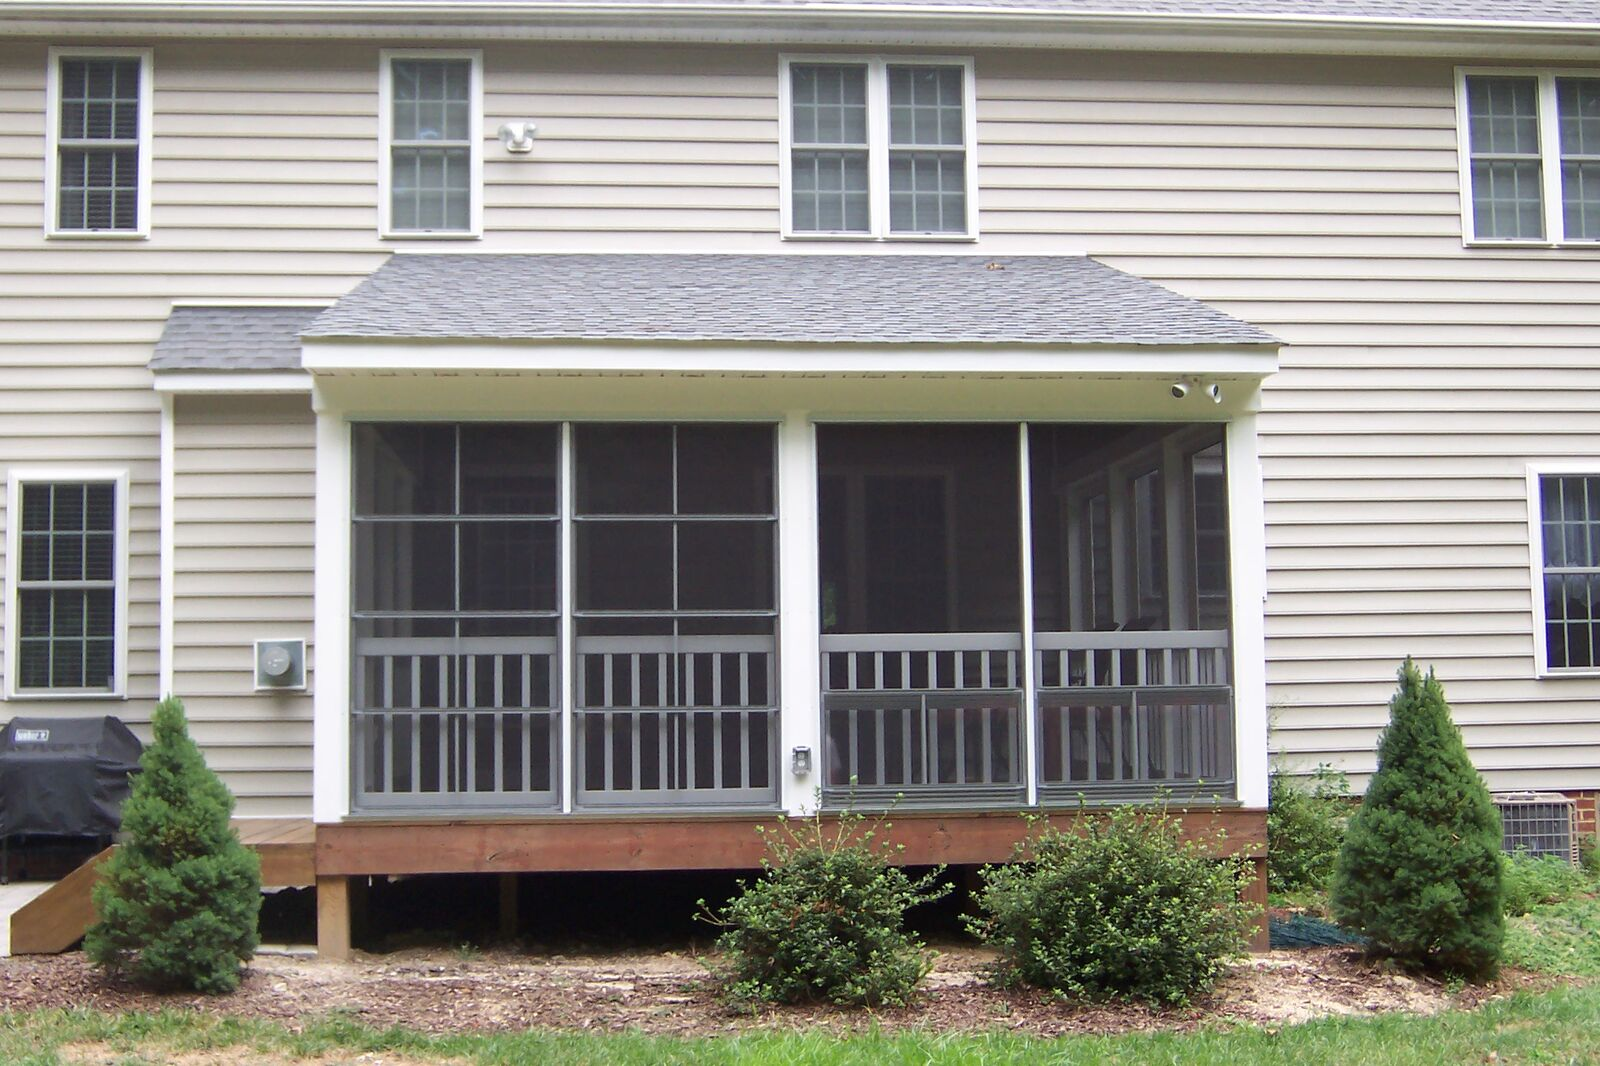 Shed Roof Porch - Add A Deck